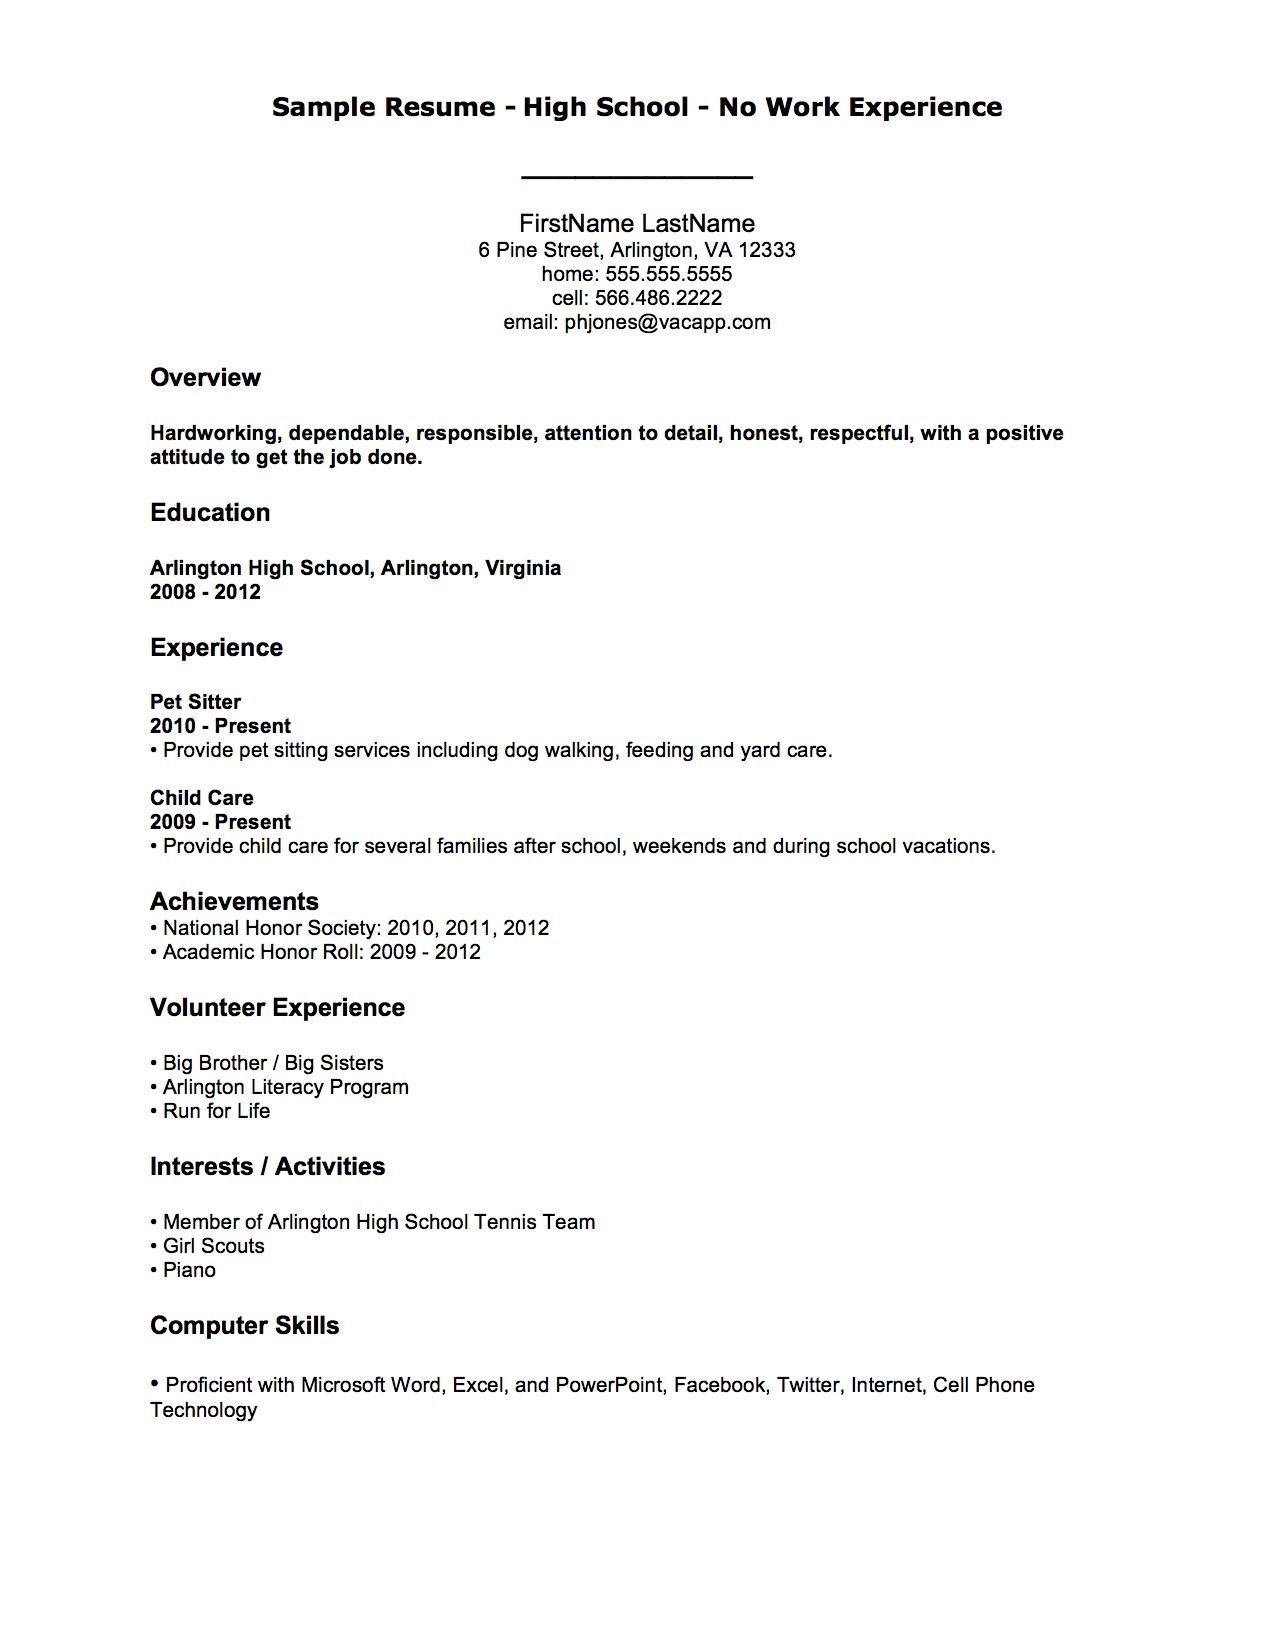 Delightful No Experience Resumes | Help! I Need A Resume, But I Have No Experience Intended Resume With No Experience